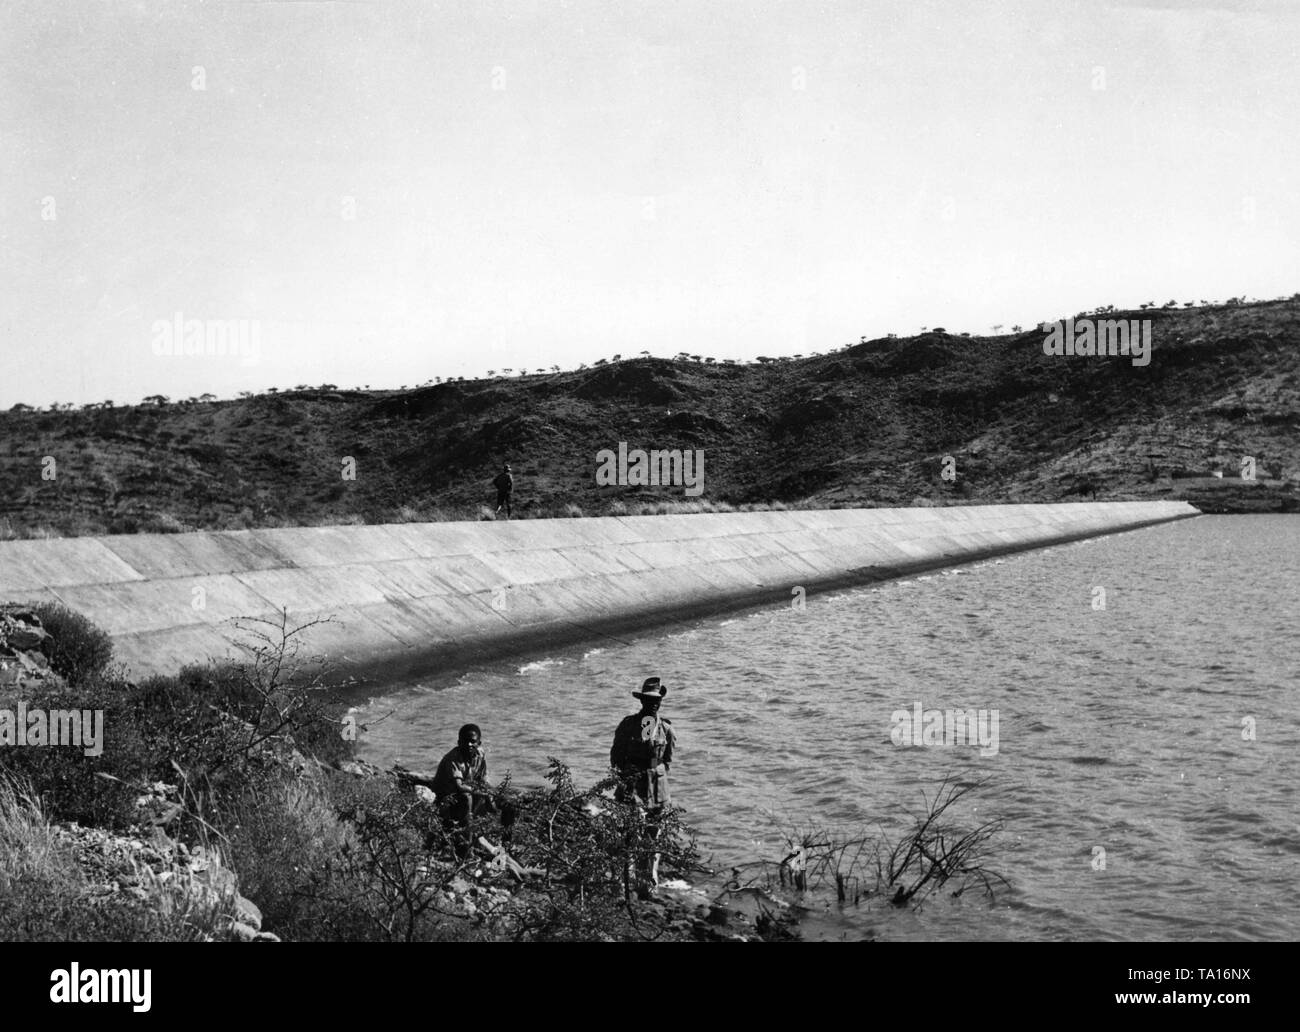 The inauguration of the reservoir near Windhoek, which was to ensure the drinking water supply of the state capital, took place in 1934. In the foreground are two guards in European clothes on the bank of the reservoir, the uniforms of the German Schutztruppe. - Stock Image